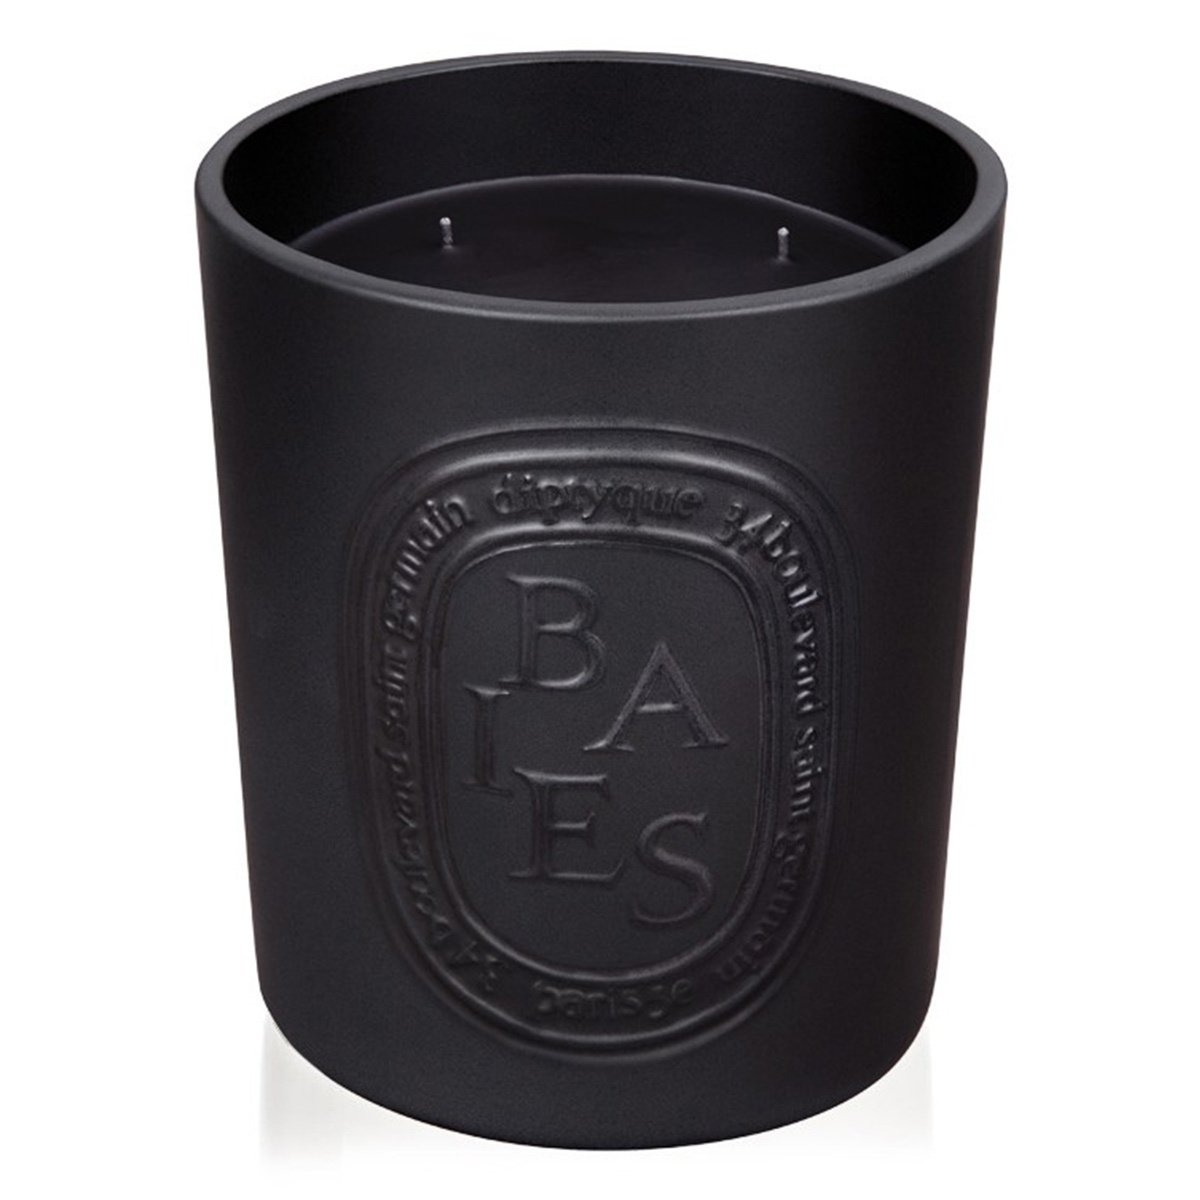 Diptyque Baies Indoor/Outdoor Ceramic Candle-51.3 oz. by Diptyque